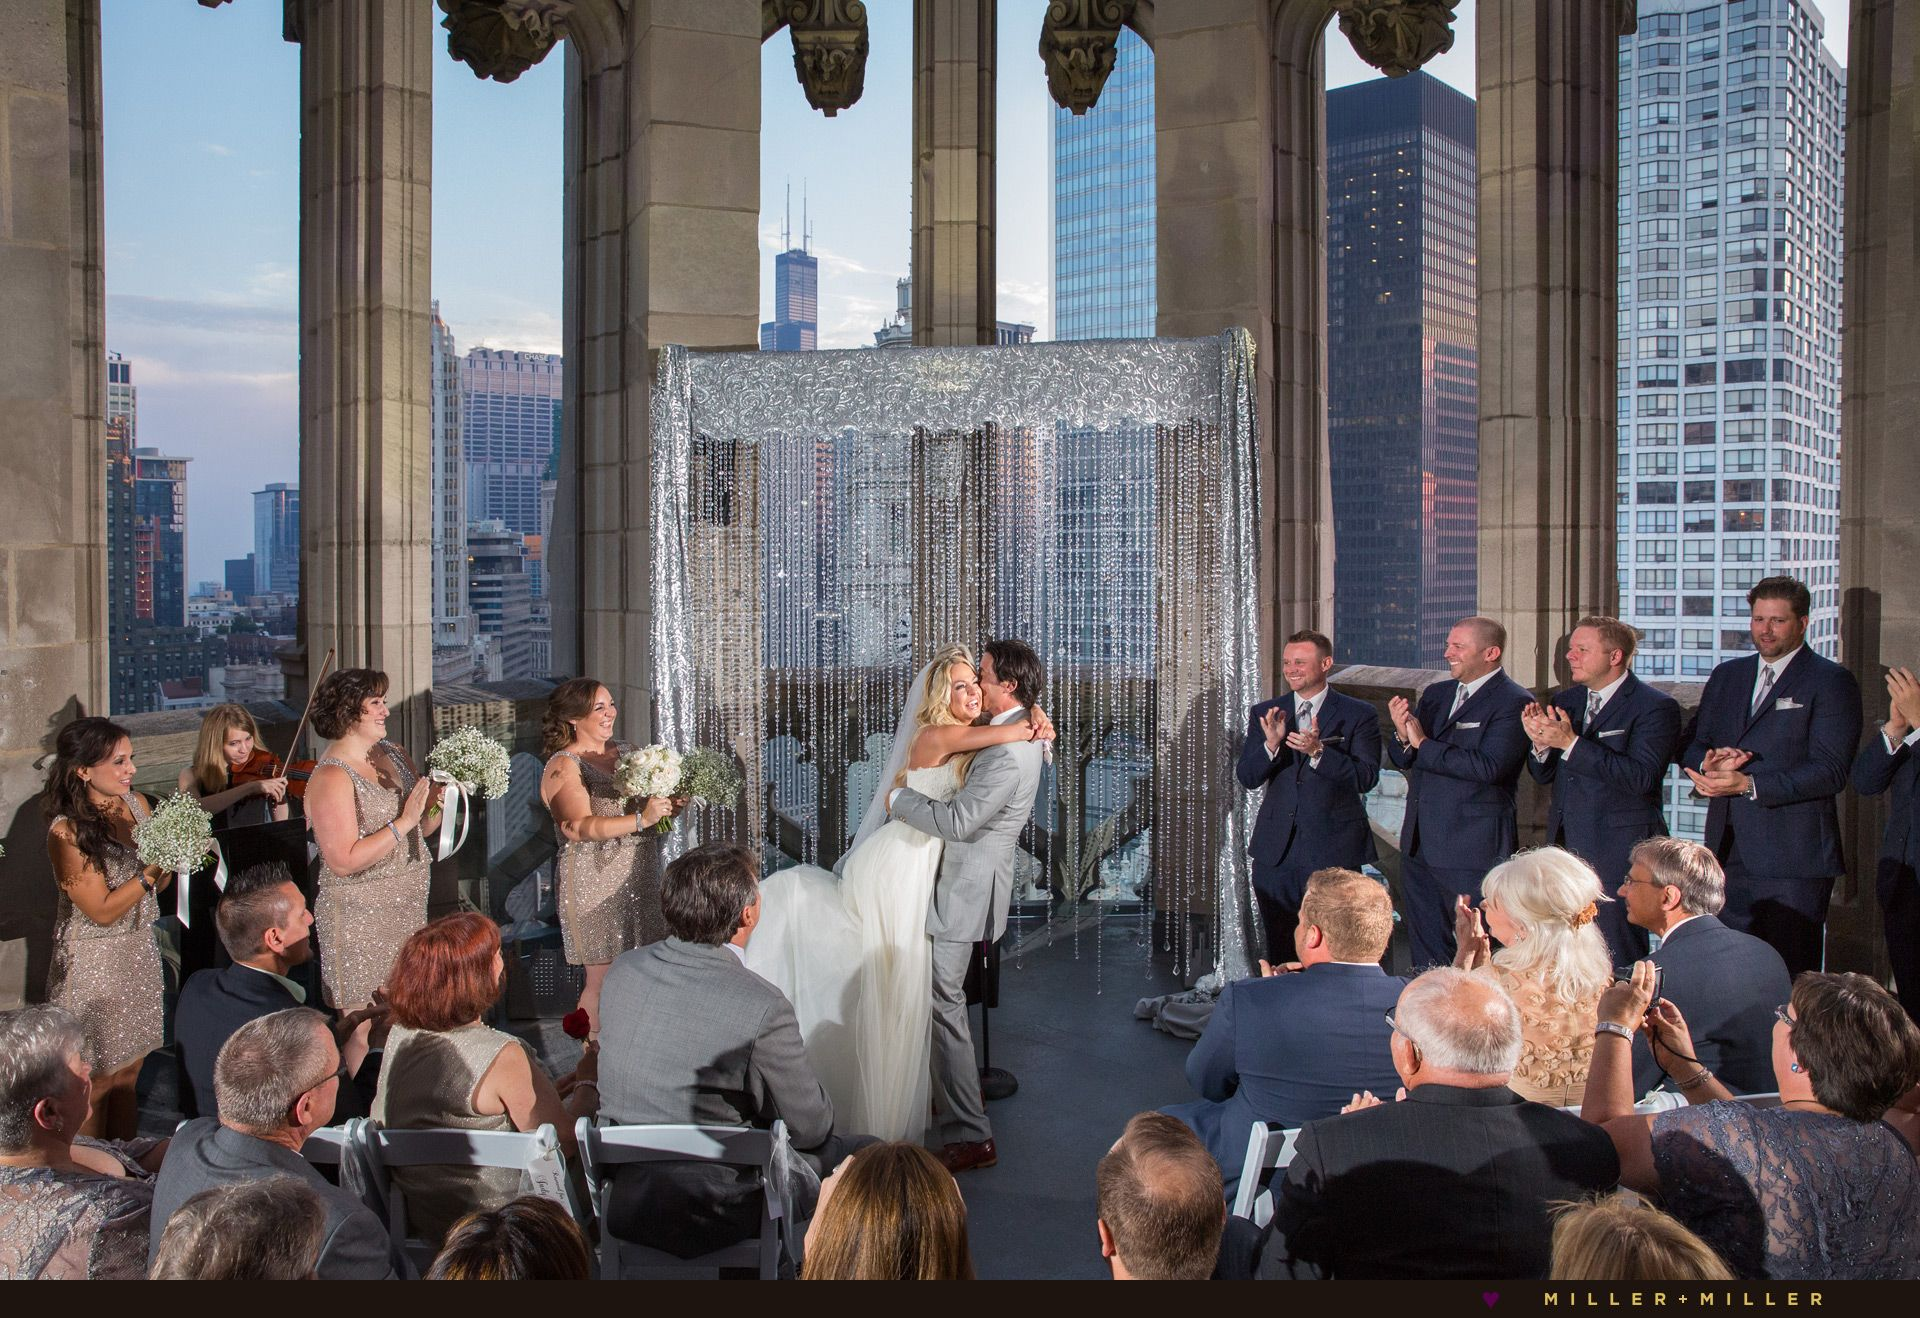 Cheap Wedding Photography Chicago: Pin By MillerMiller Photography On Miller + Miller Wedding